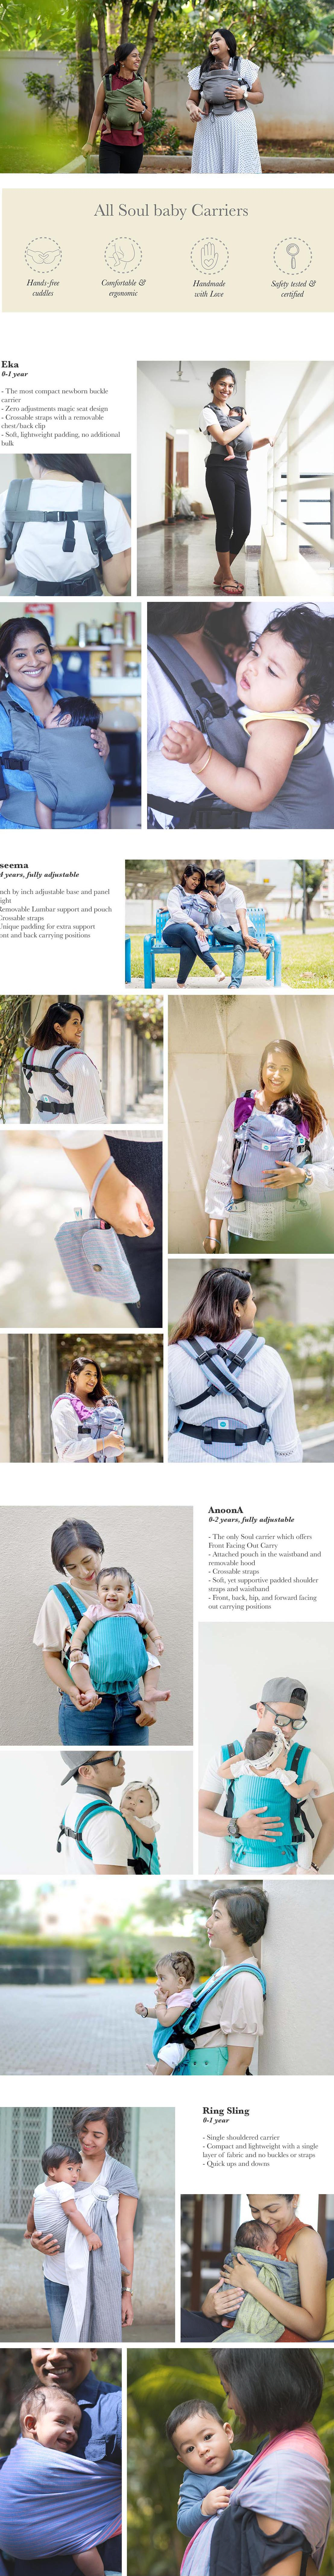 Soul - India's Best Baby Carriers